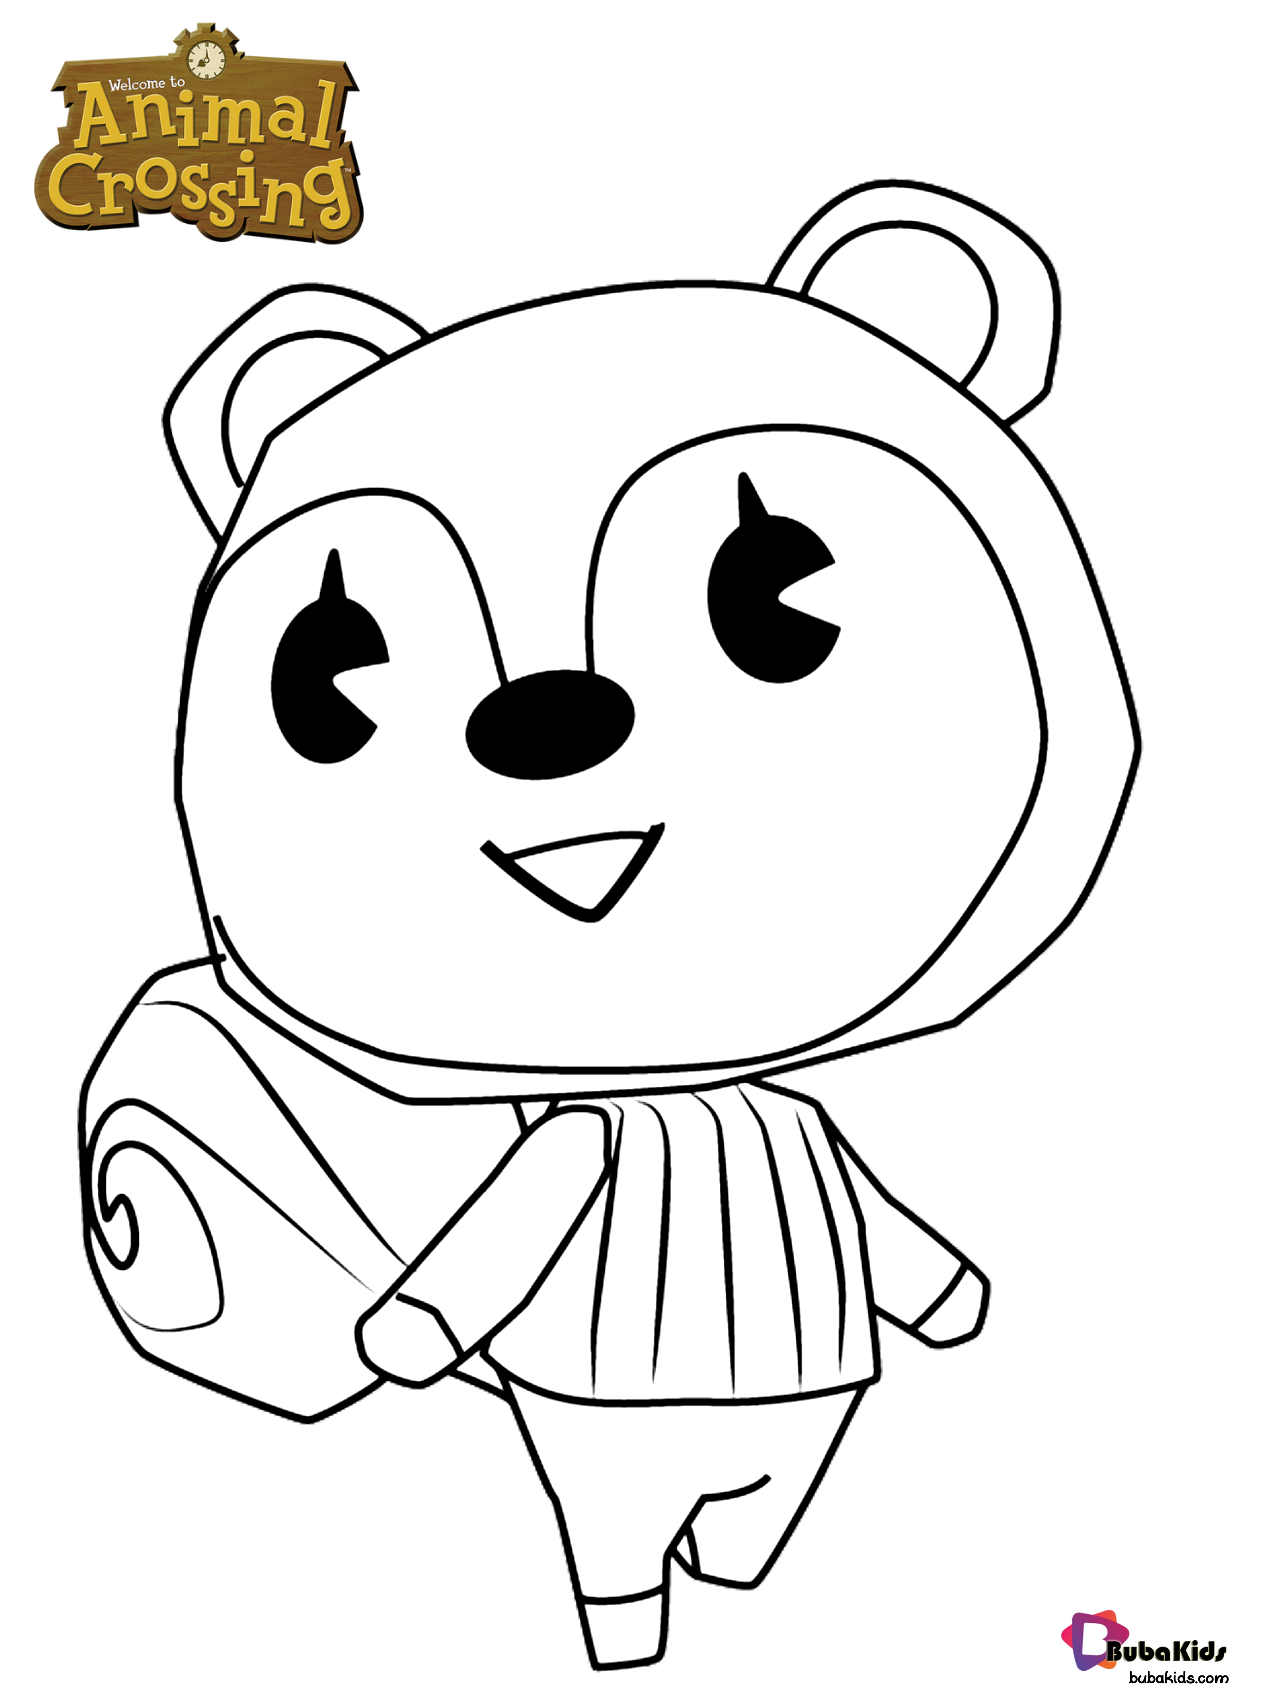 Poppy Animal Crossing Character Coloring Page Collection Of Cartoon Coloring Pages For Teena Animal Crossing Characters Animal Crossing Cartoon Coloring Pages